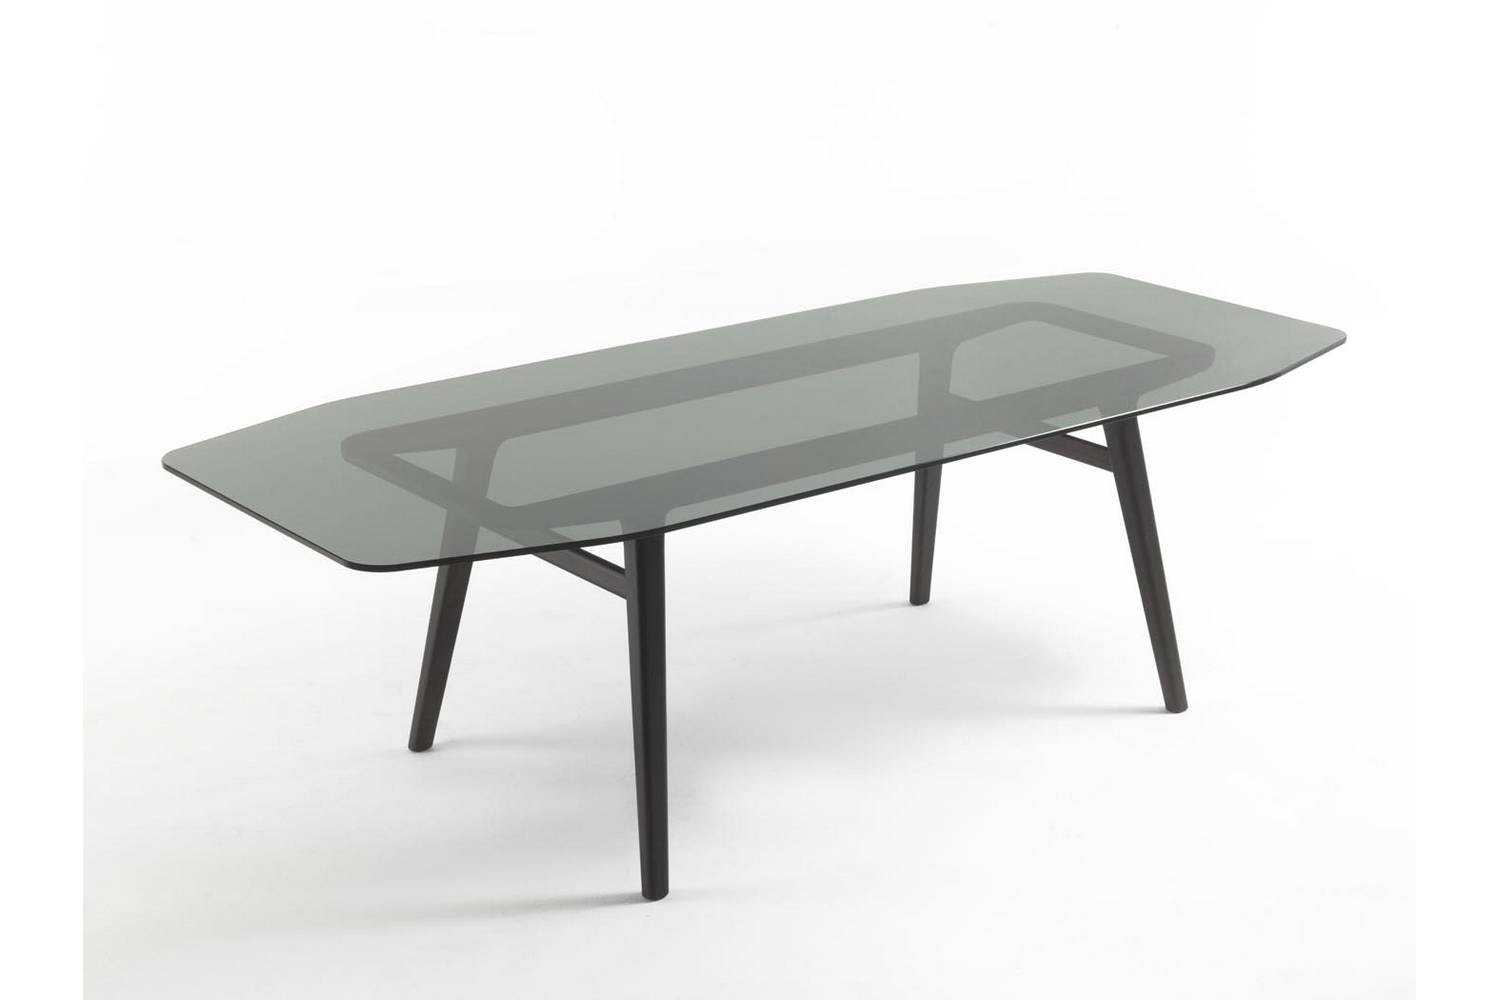 Loop Table by Emmanuel Gallina for Porada